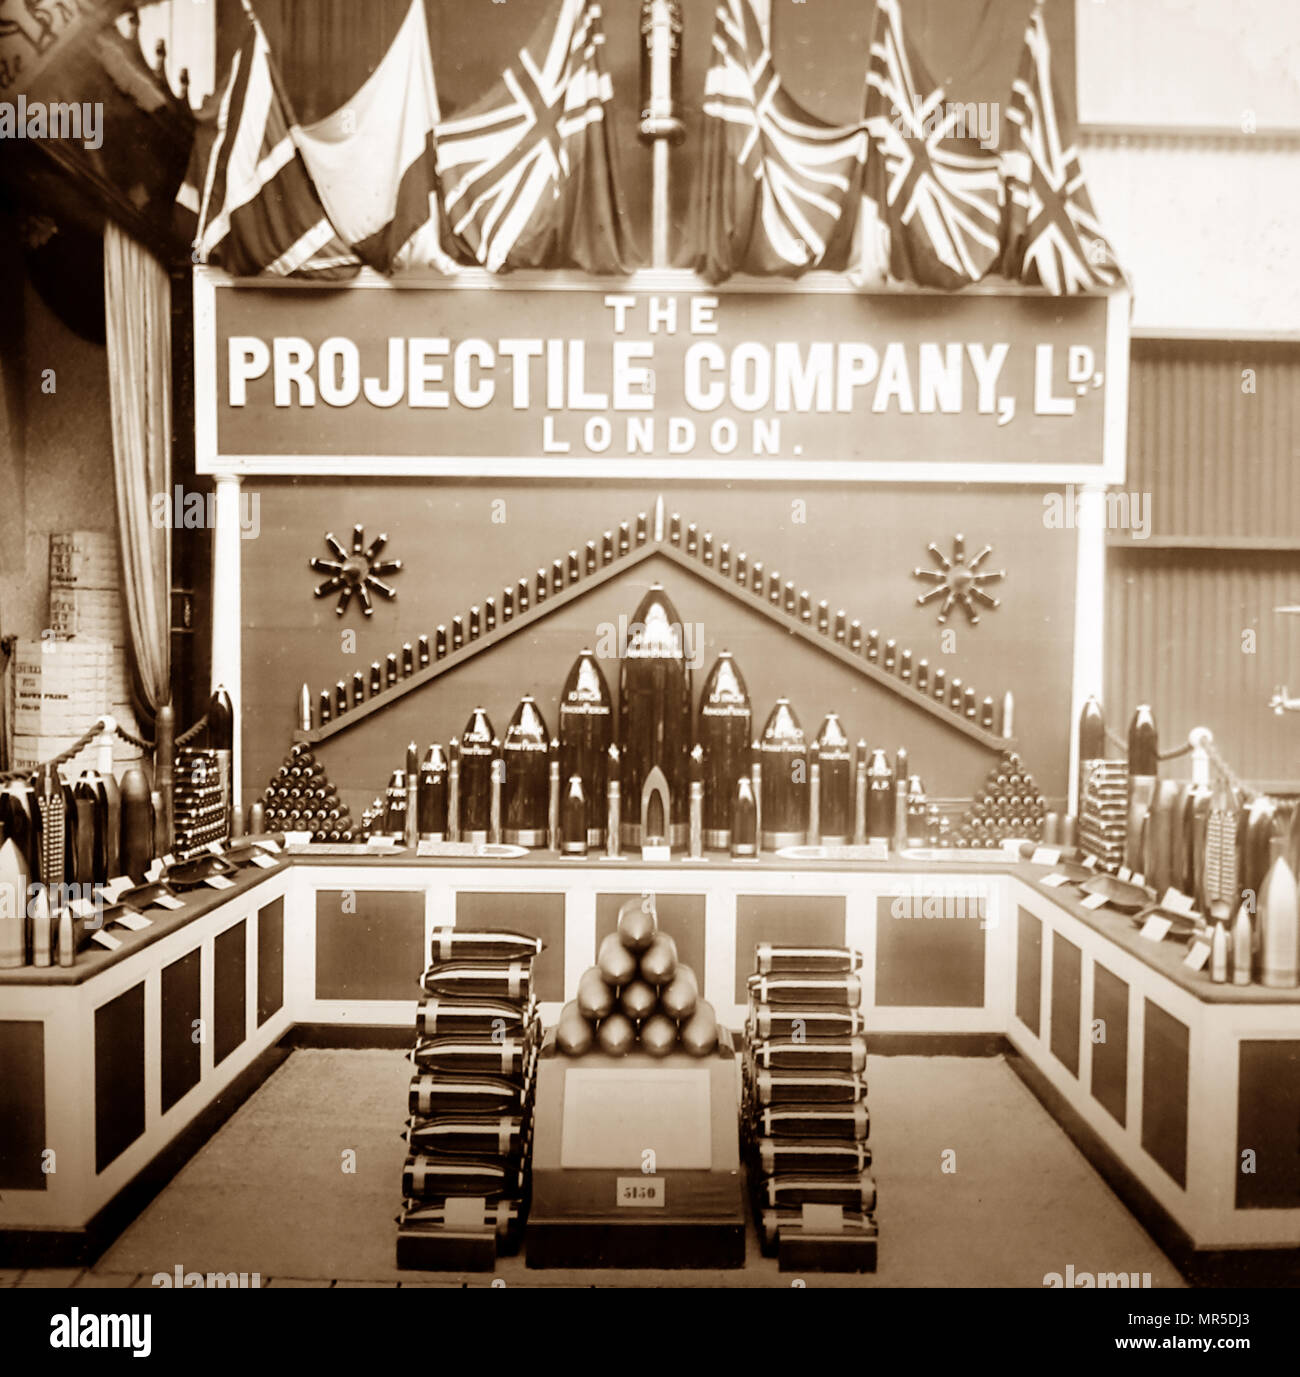 Stand of the Projectile Company Ltd at the Royal Naval Exhibition in 1891 - Stock Image